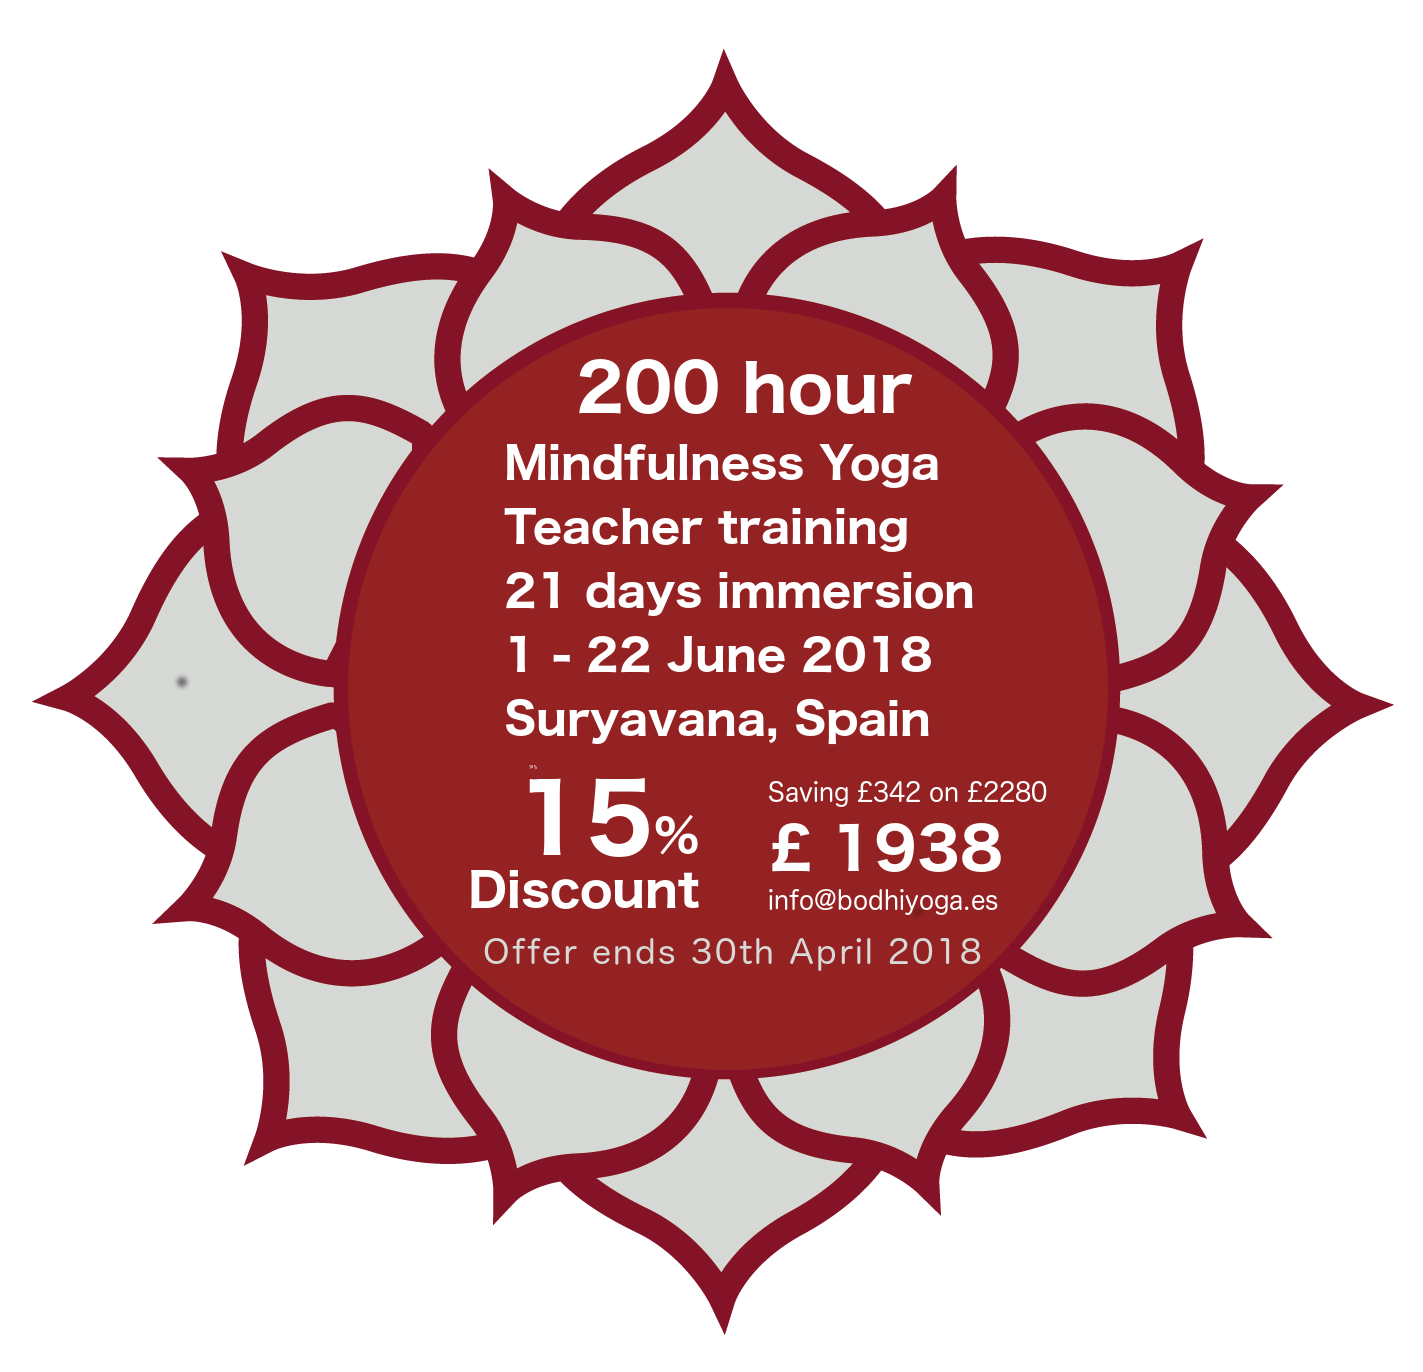 bodhiyoga-mindfulness-yoga-teacher-training-200-hour-immersion